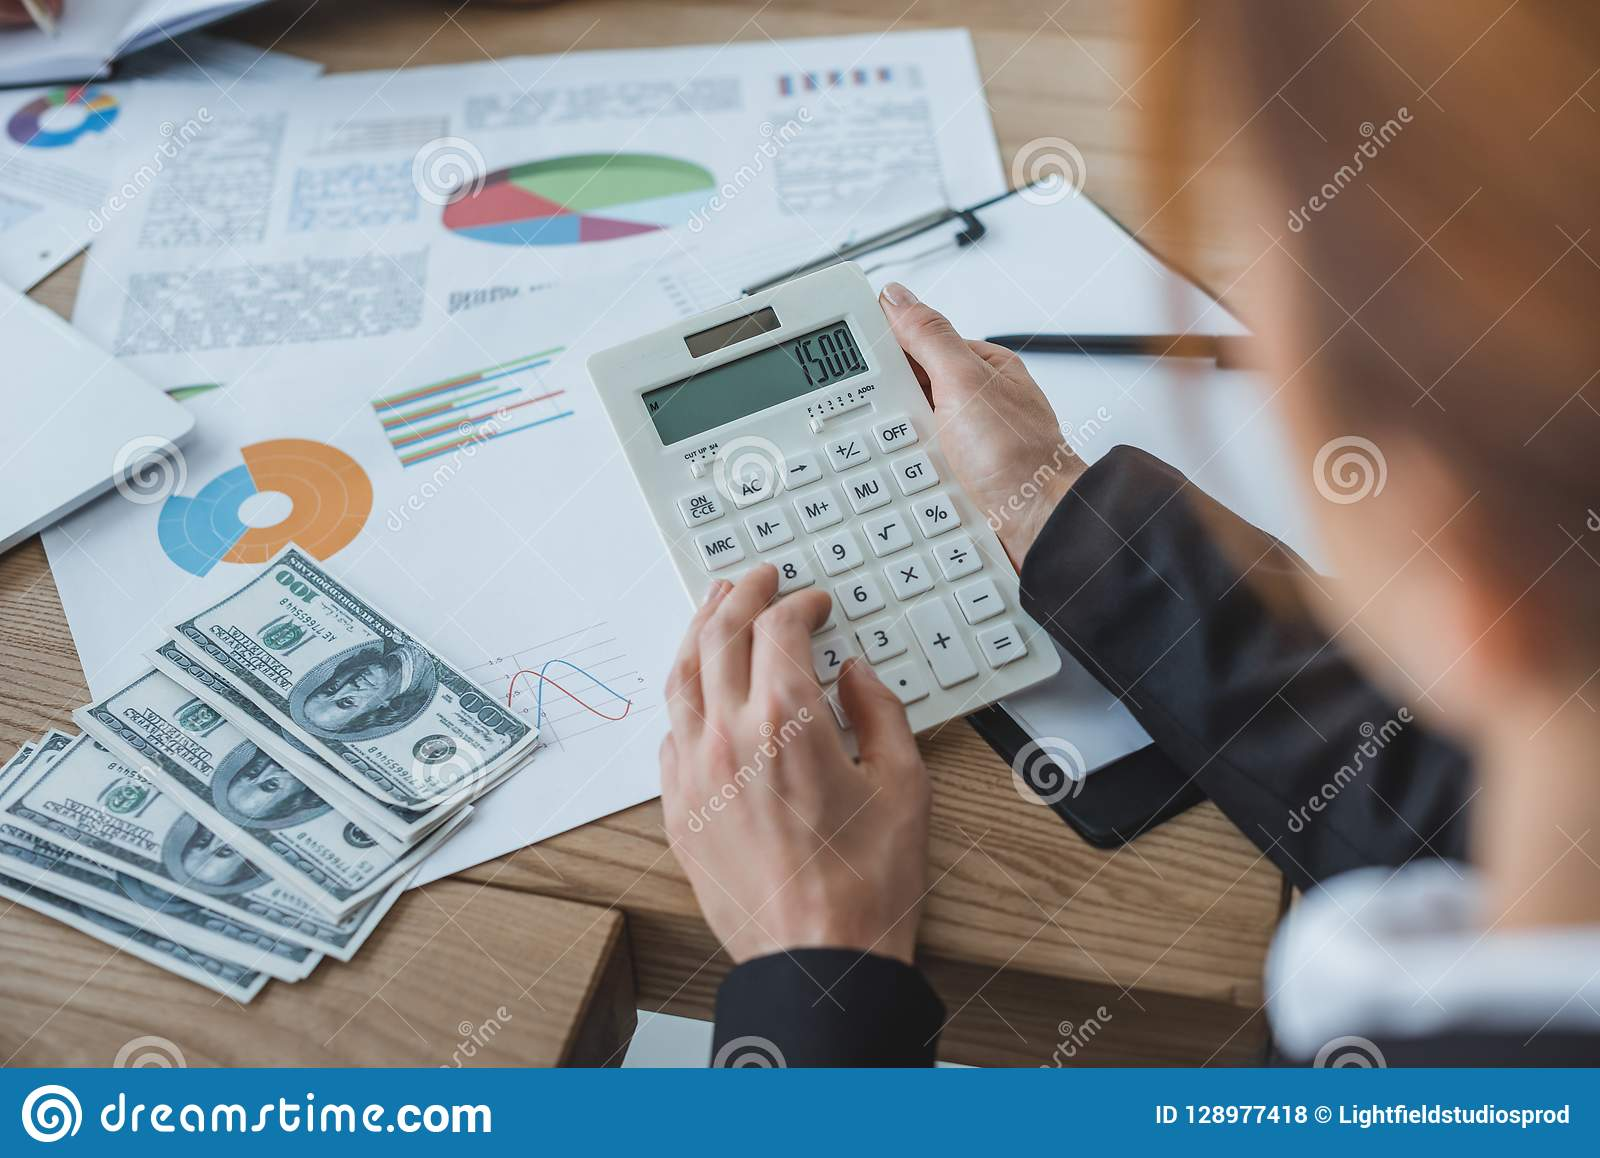 cropped image of financier using calculator at work